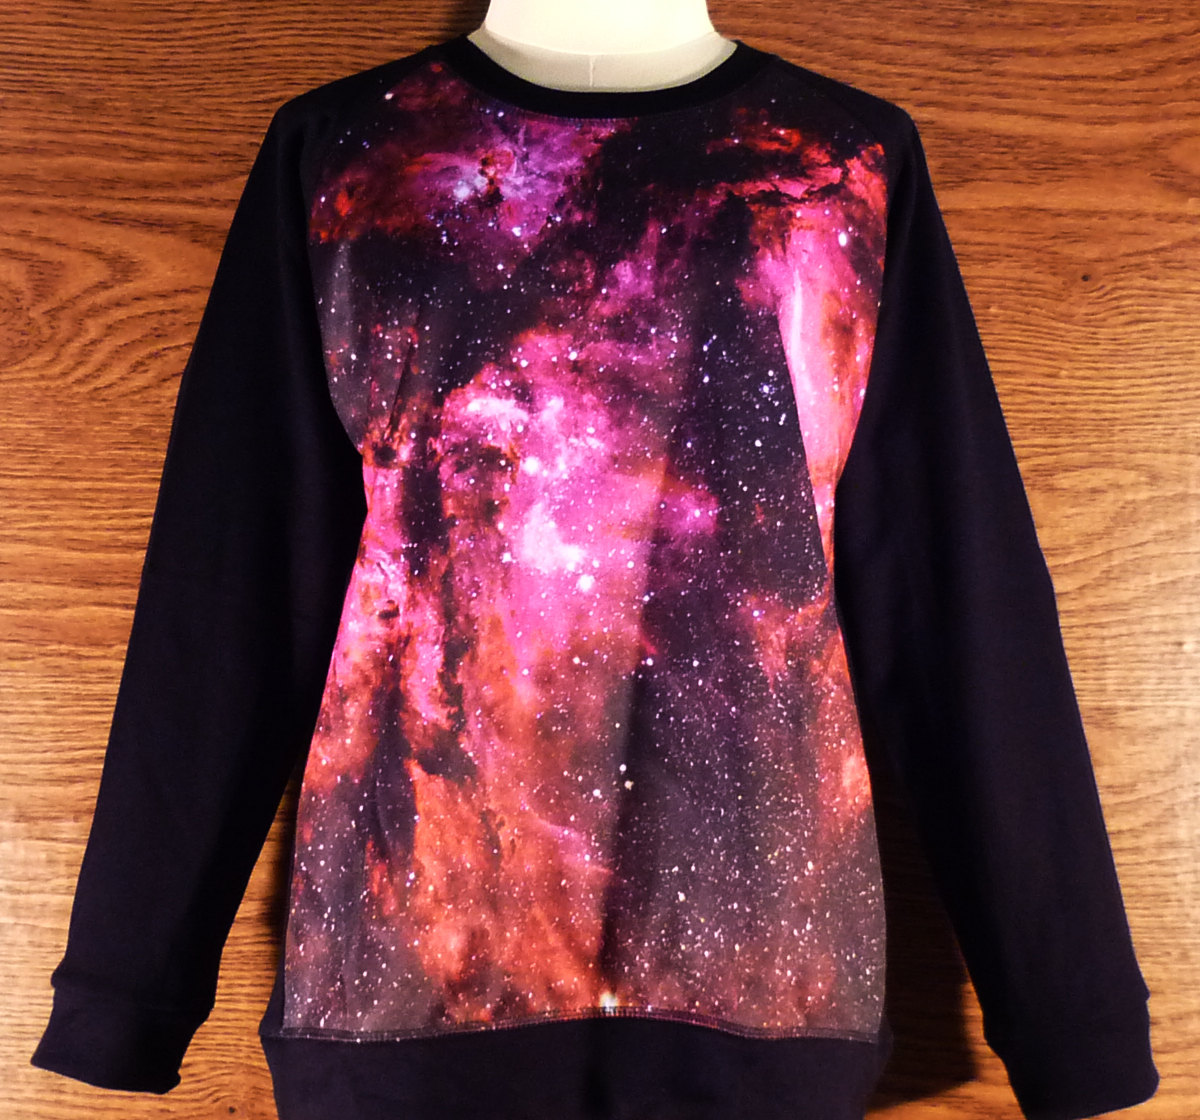 Sky galaxy shirt sweatshirt winter cold ladies fashion size m/ l long sleeve crew neck jumper galaxy sweaters red pink shirt cool women tee